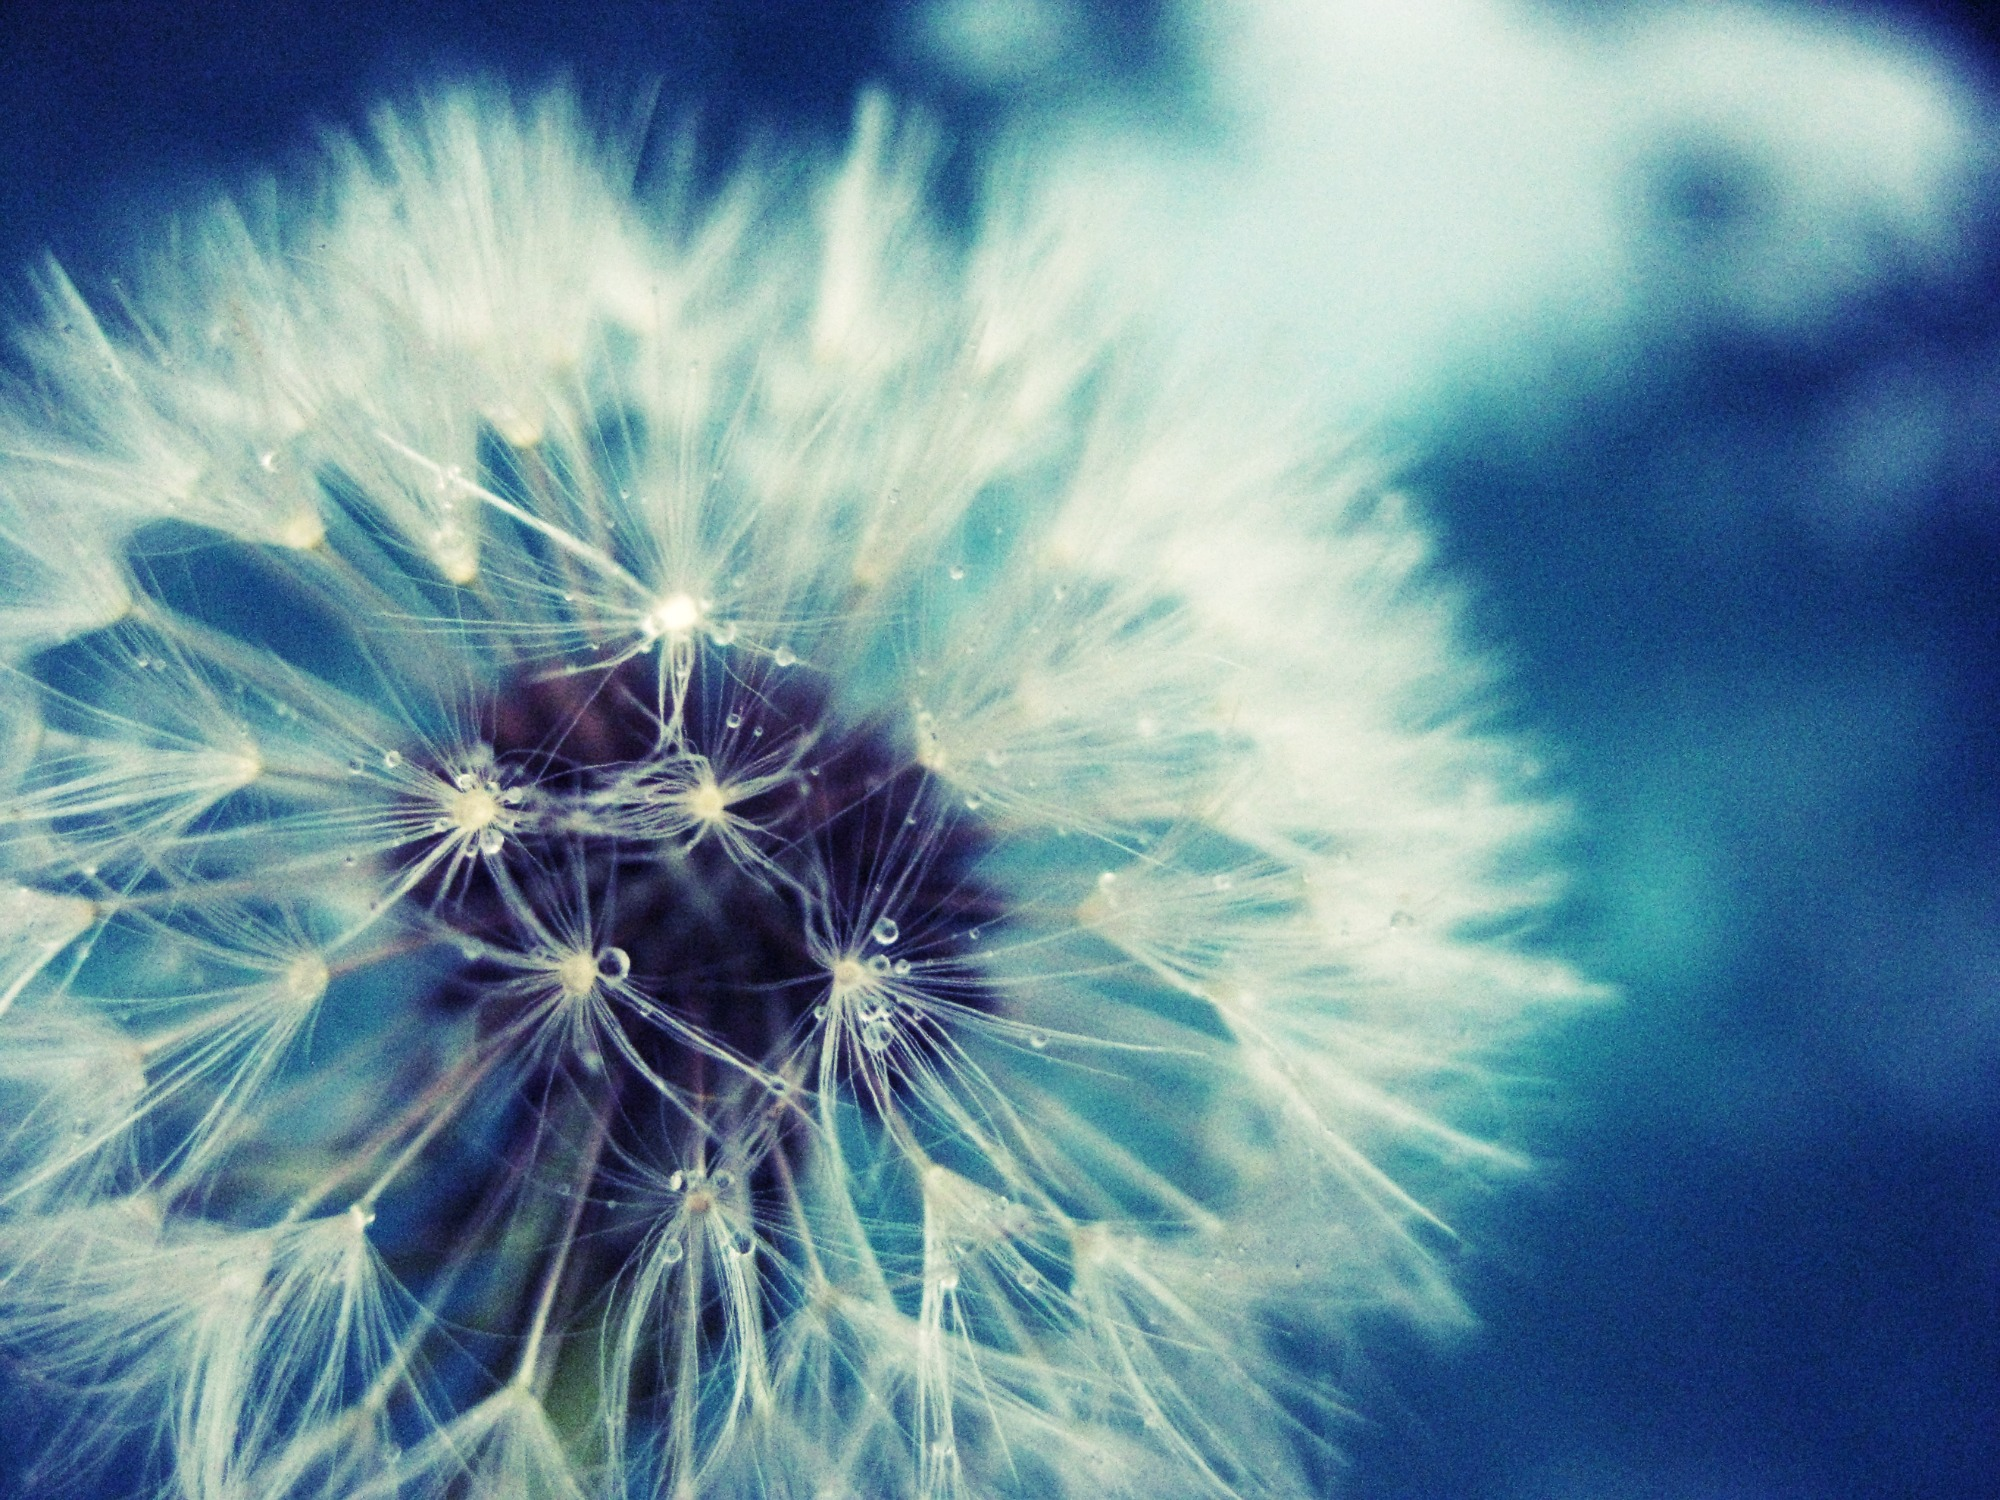 Dandelion-flower-wallpaper | Desktop Backgrounds for Free HD Wallpaper ...